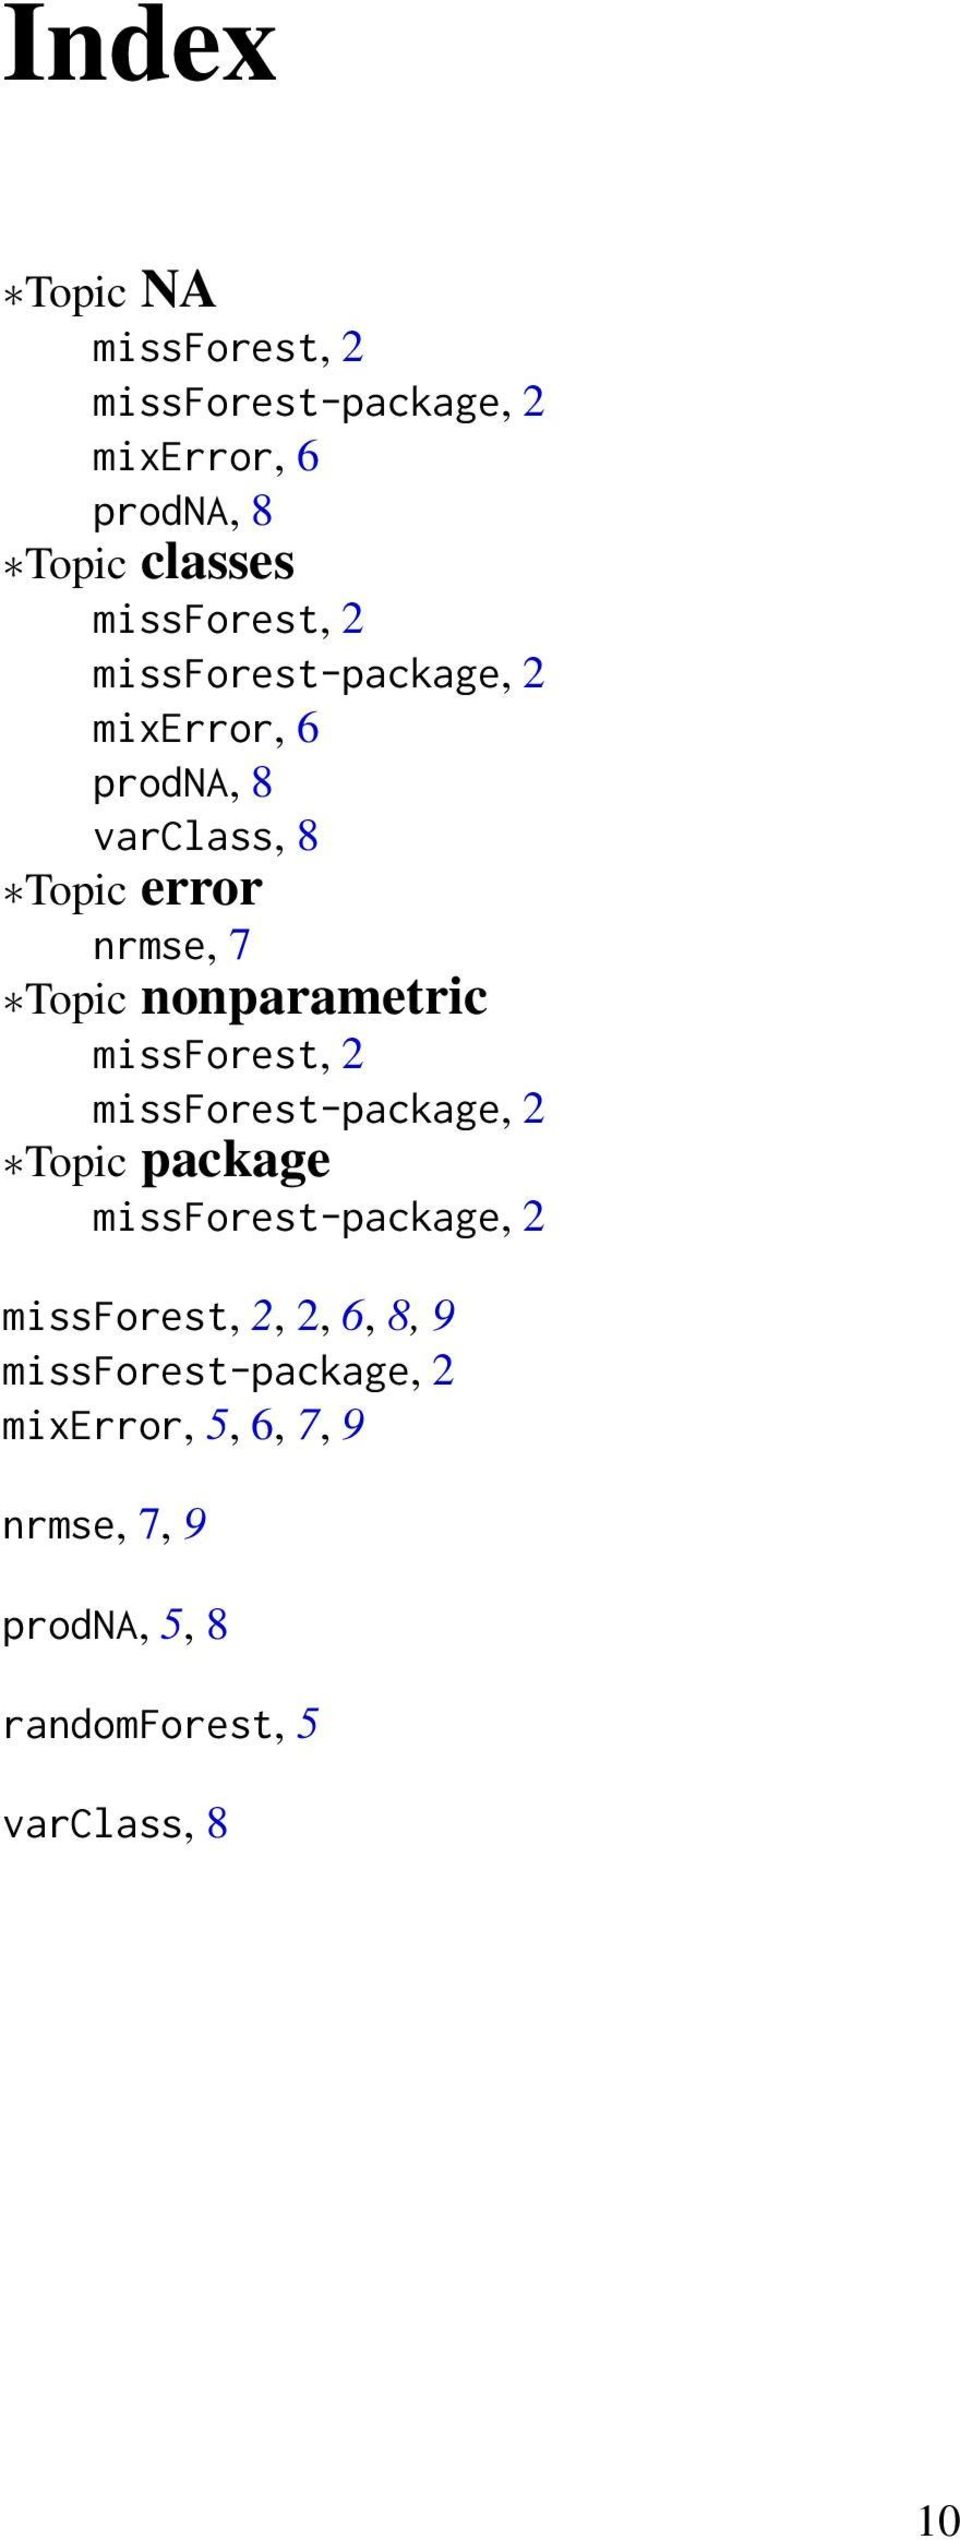 missforest, 2 missforest-package, 2 Topic package missforest-package, 2 missforest, 2, 2, 6, 8, 9